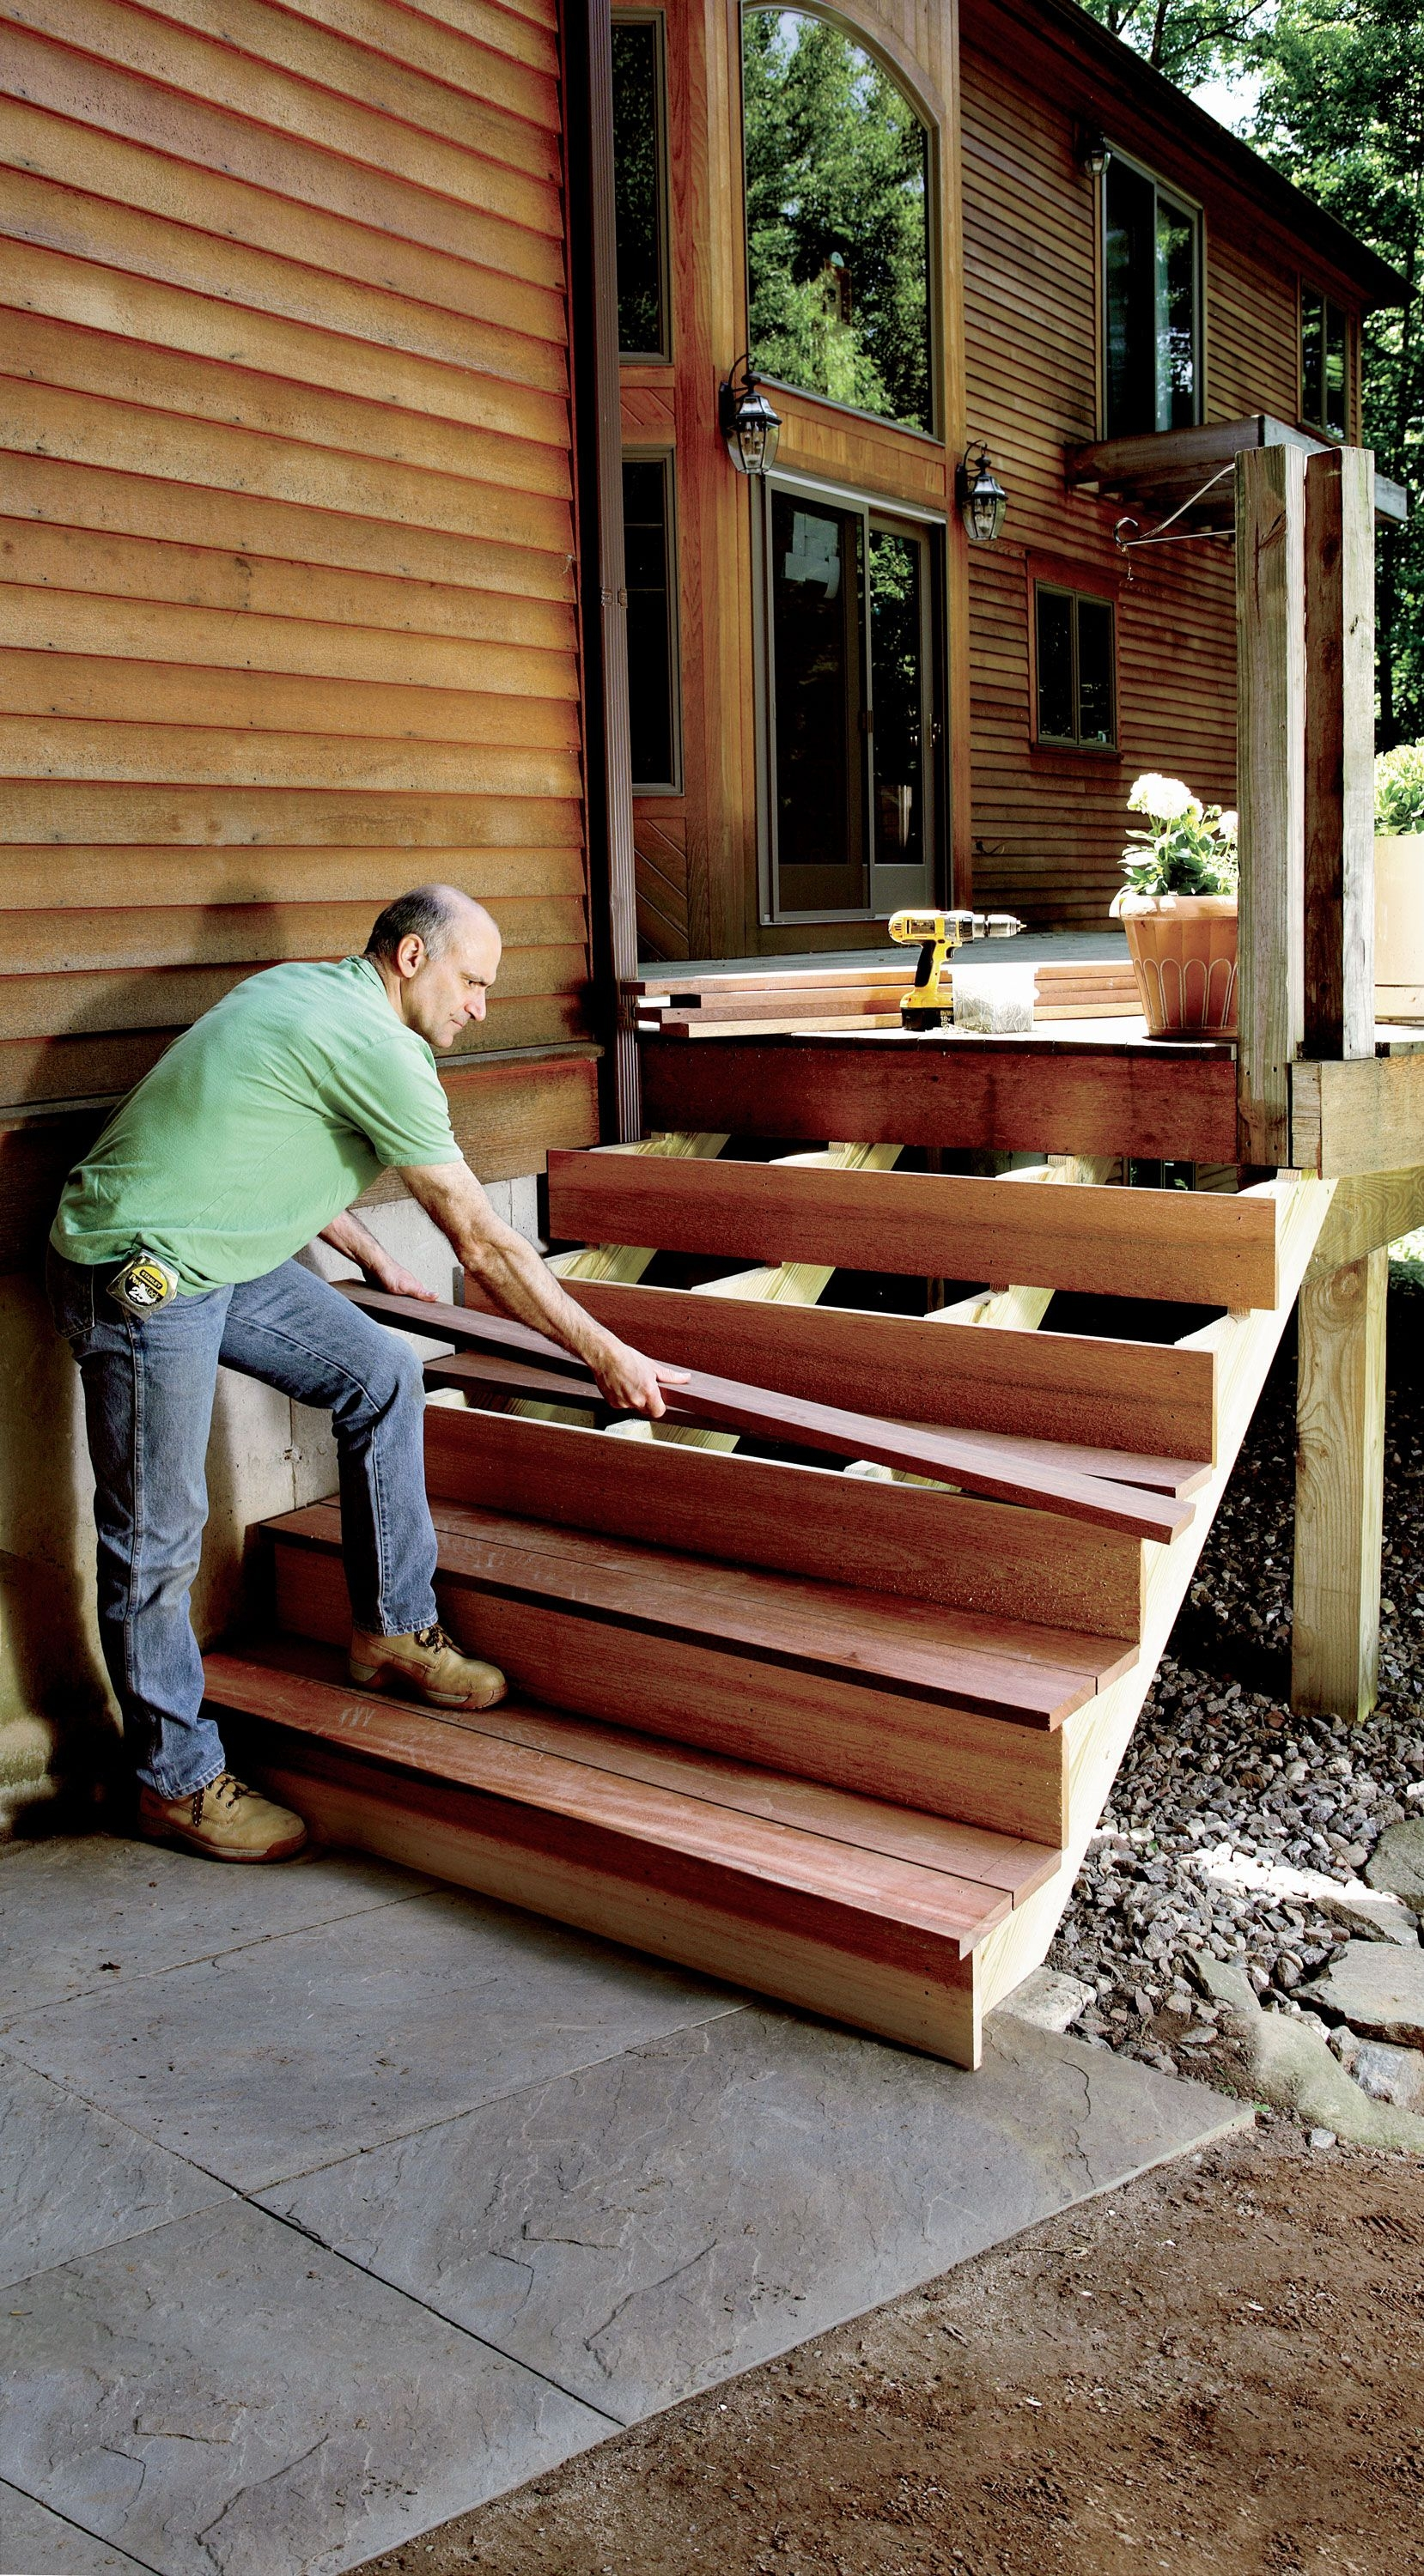 How To Build Stairs Stairs Design Plans | Attaching Wood To Concrete Steps | Composite Decking | Handrail | Staircase | Screws | Deck Stairs